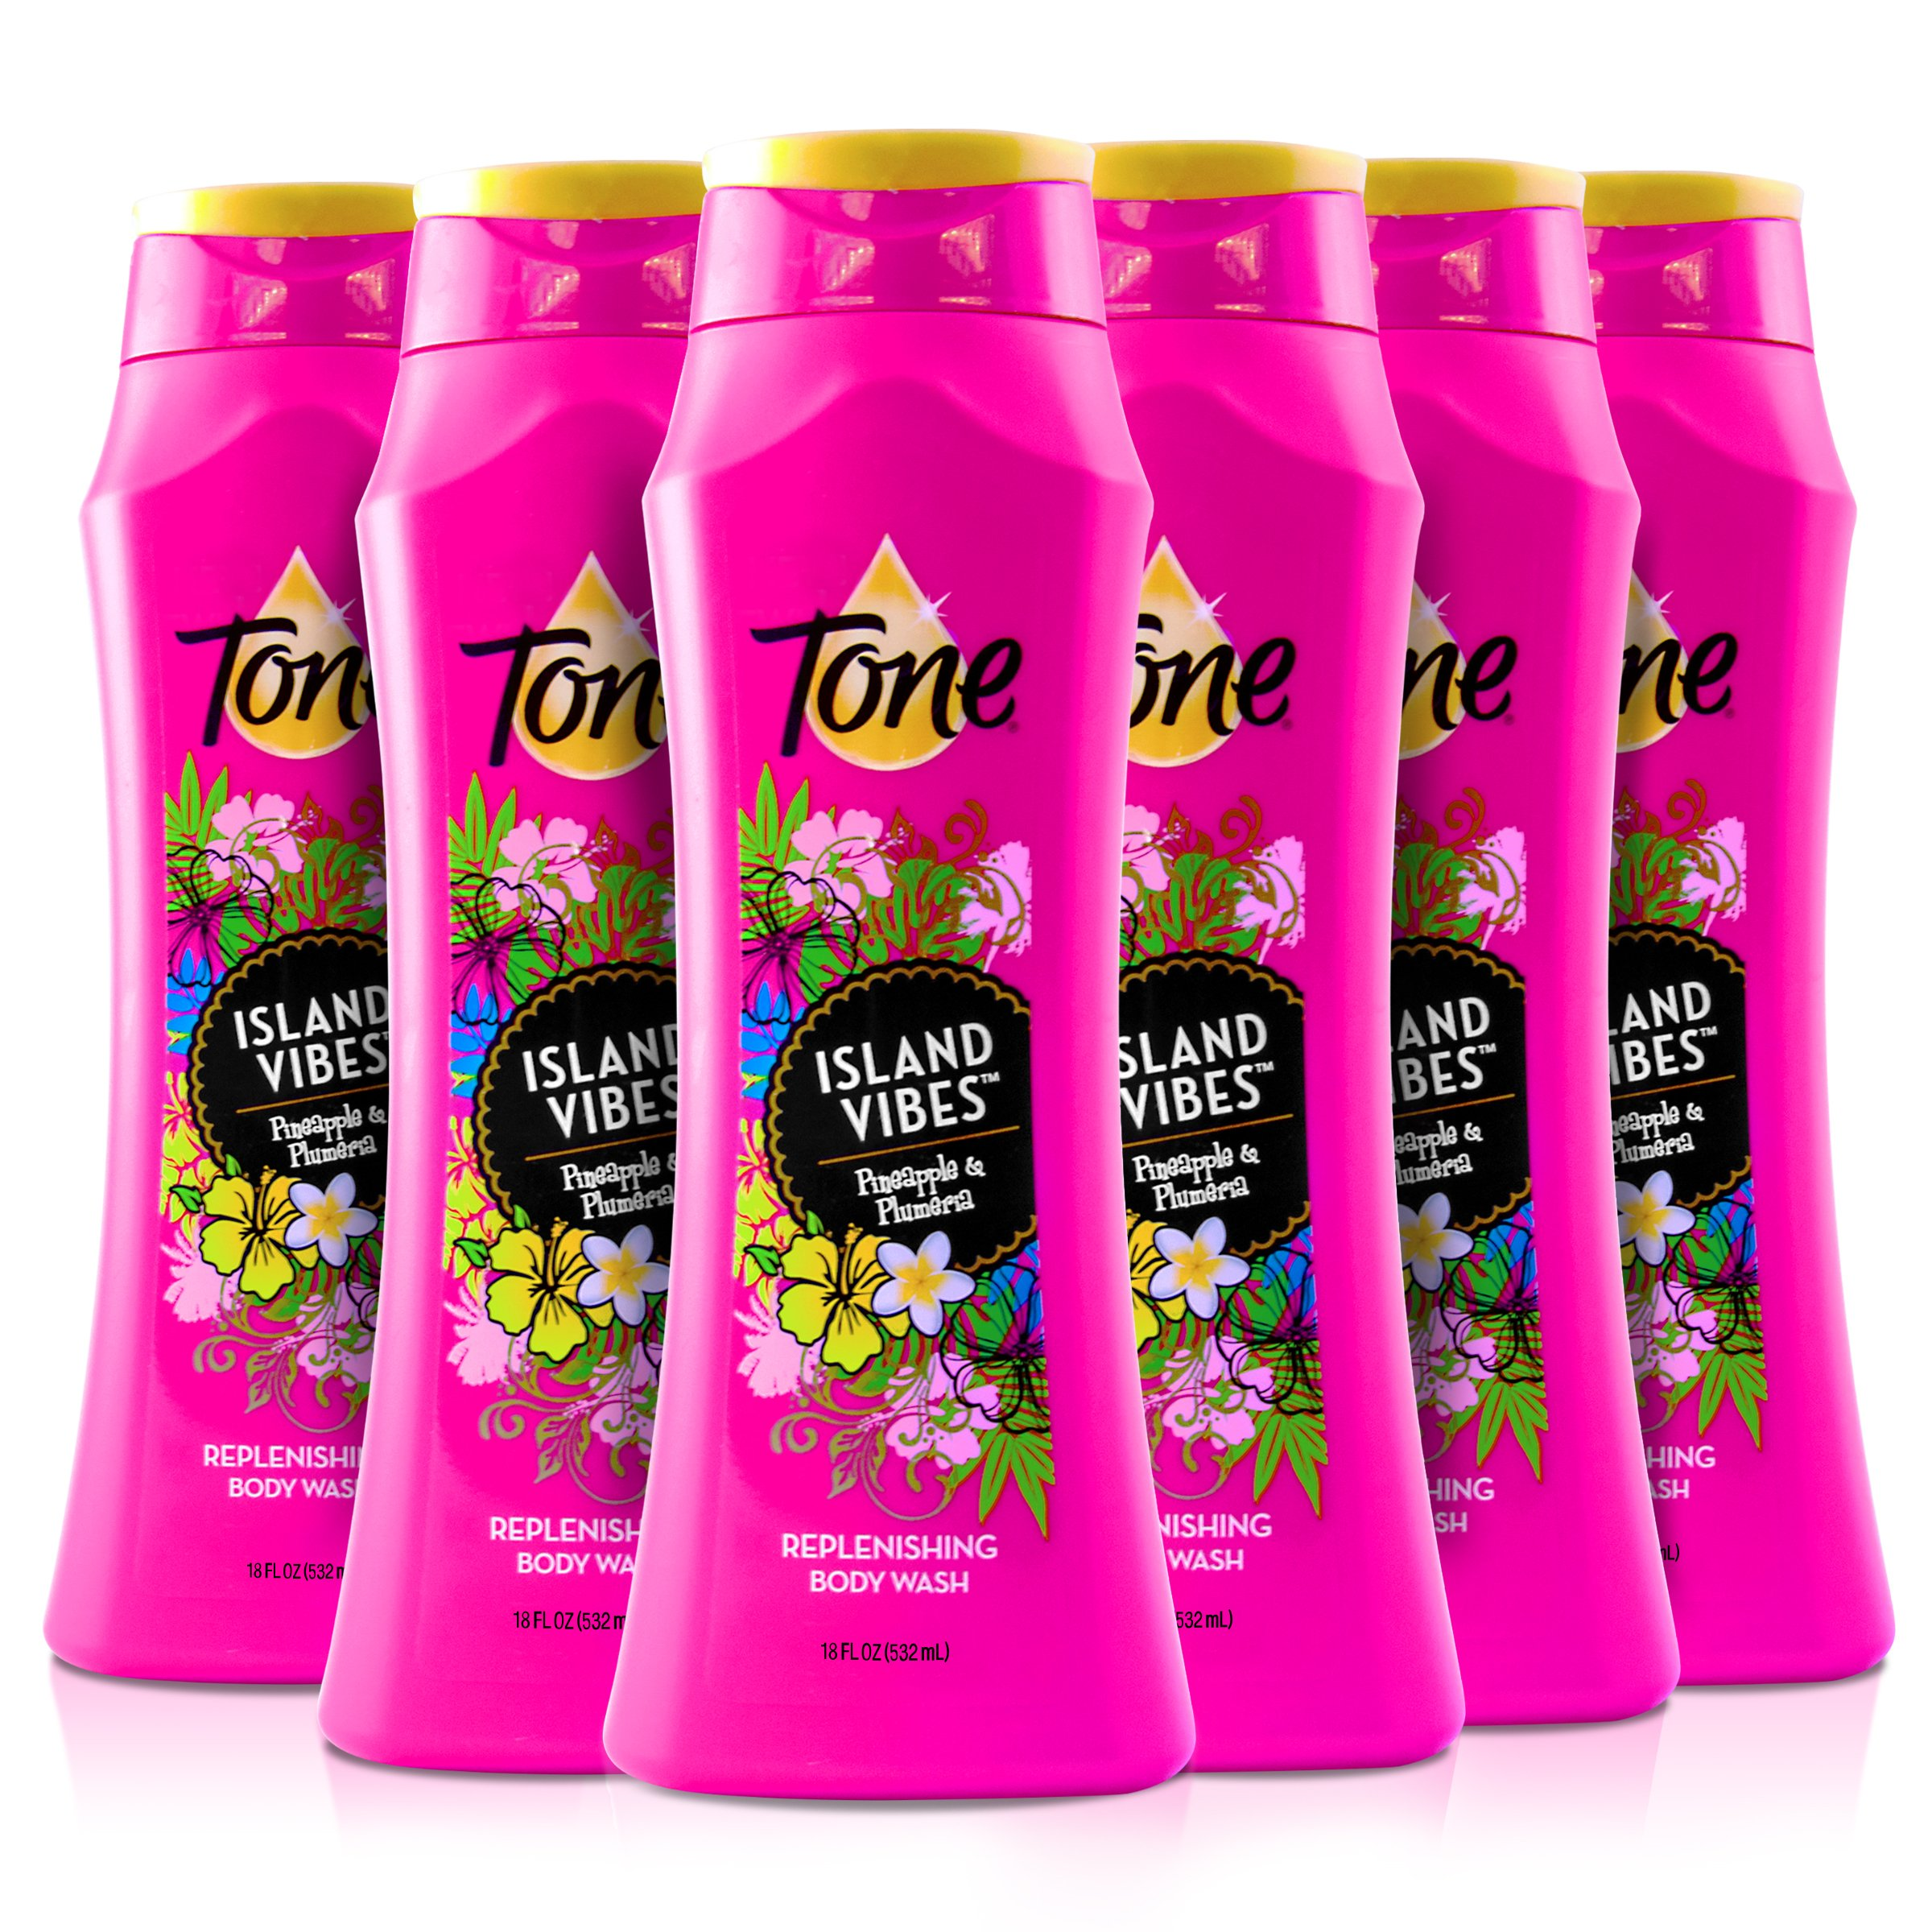 Tone Body Wash, Island Vibes, 18 Ounce (Pack of 6)